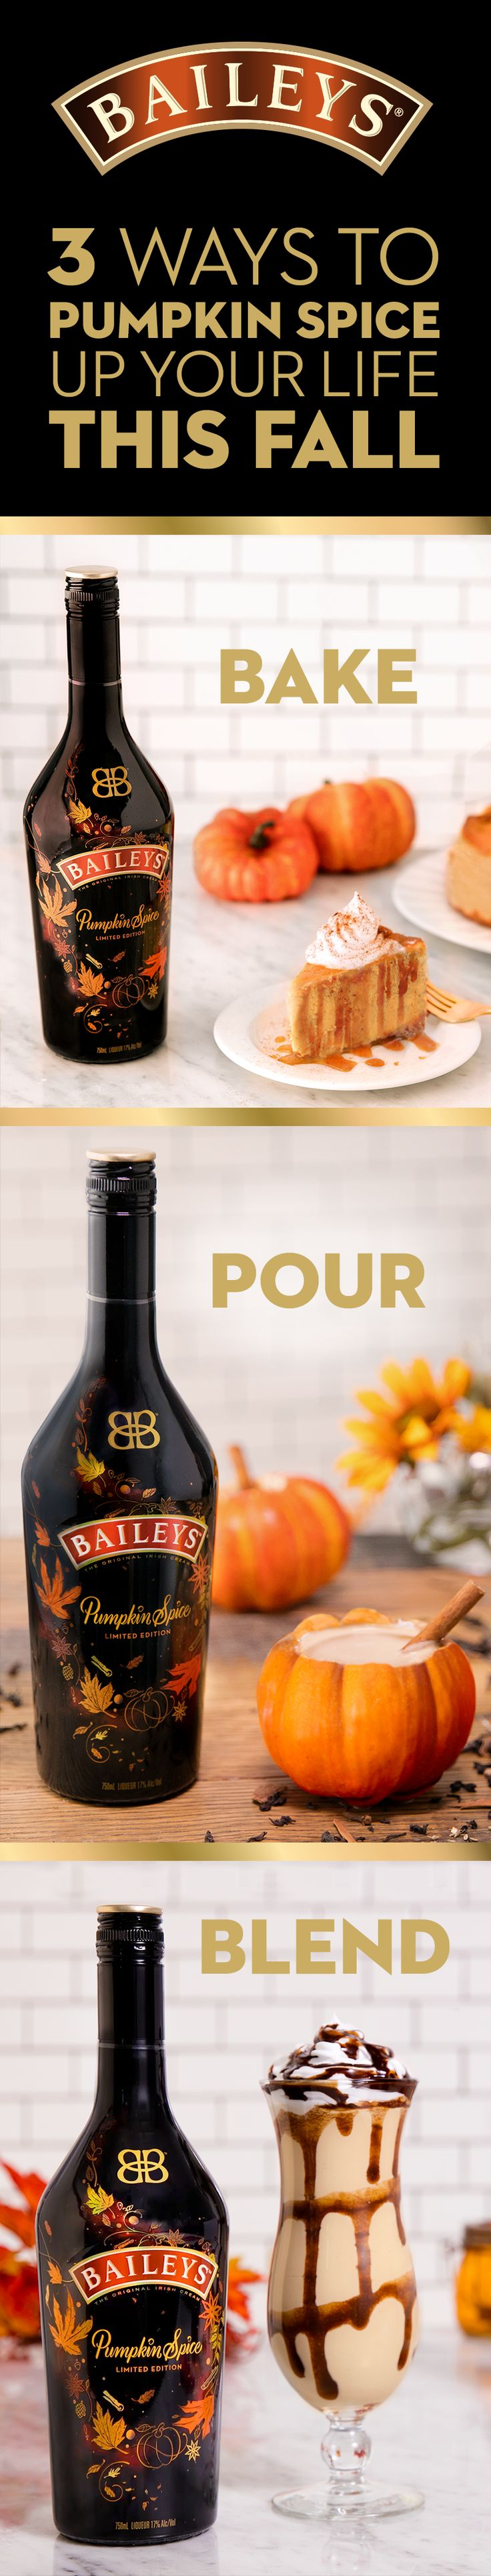 Kickoff the fall with Baileys Pumpkin Spice! Enjoy these 3 recipes at Thanksgiving dinner, brunch, or Halloween movie night. Cheesecake: Add 1 cup of Baileys Pumpkin Spice and 12 oz of pumpkin puree to your cheesecake mixture. Spoon into pie crust, bake, then refrigerate. Mudslide: Blend 2 oz Baileys Pumpkin Spice, 0.5 oz Smirnoff No. 21 Vodka, and 1 cup of ice. Pour mixture into glass and swirl chocolate syrup around glass. Latte: Pour 2 oz Baileys Pumpkin Spice into your coffee or chai…